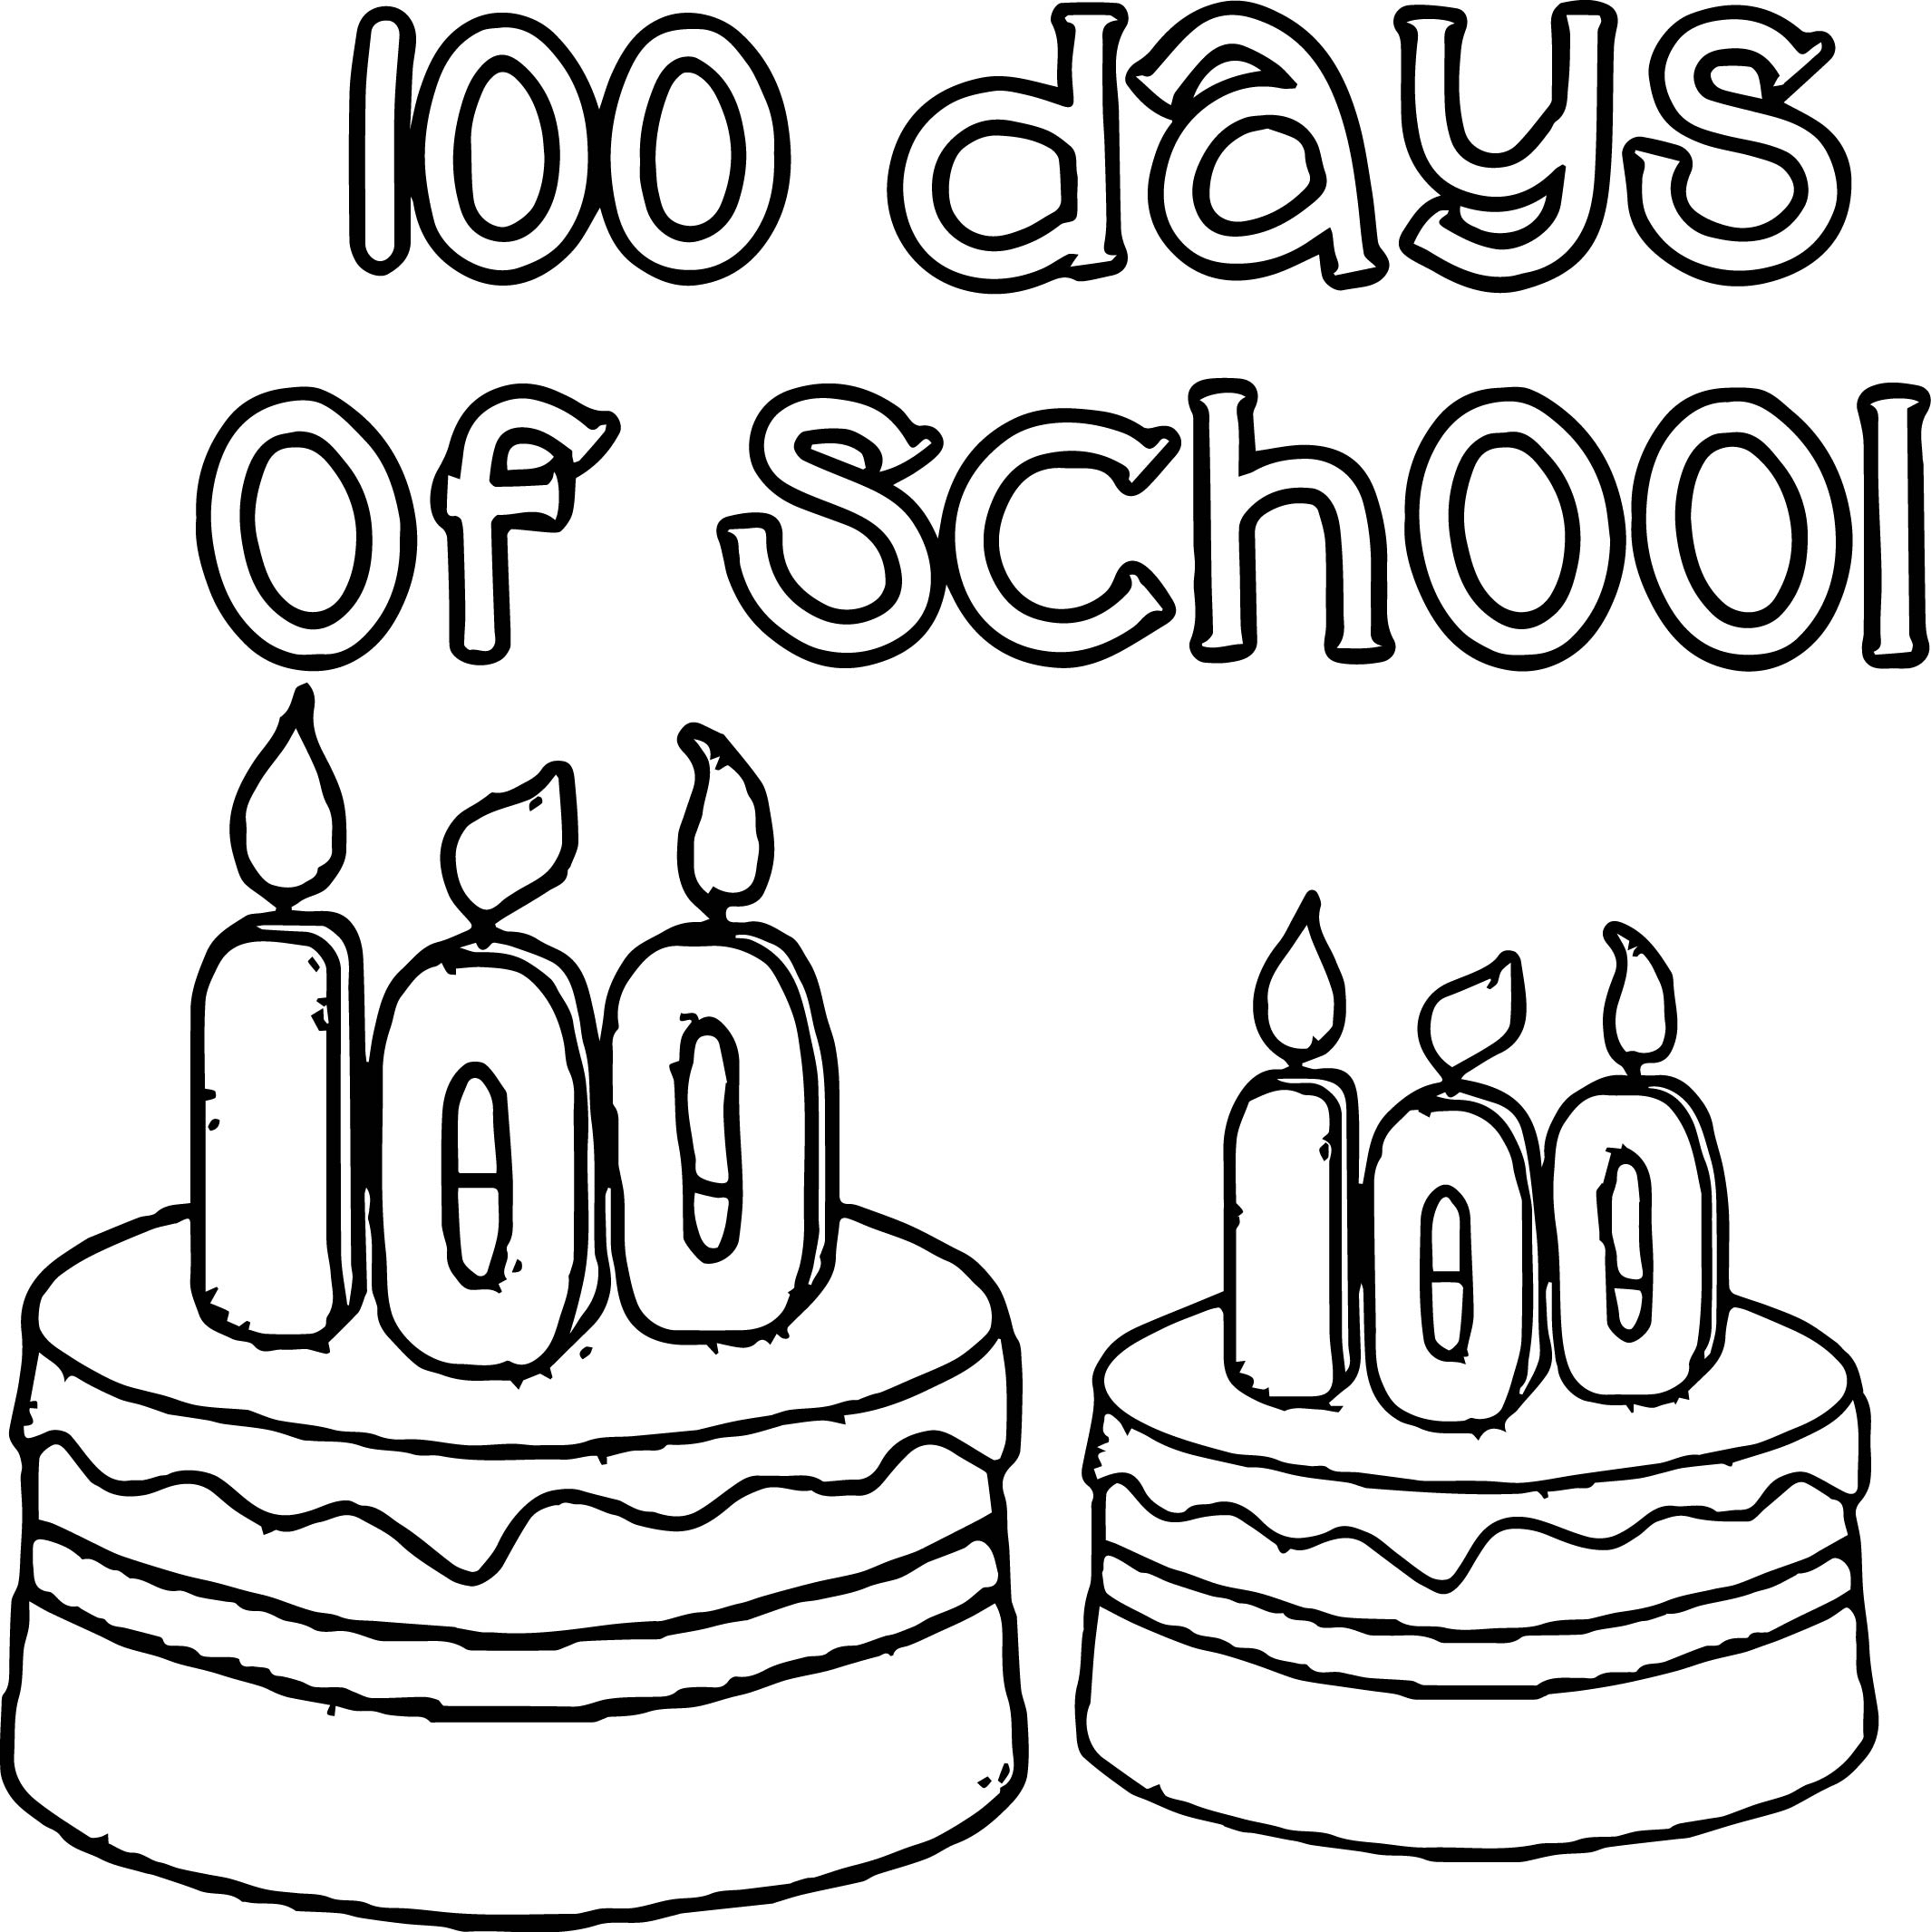 100 Days Of School Coloring Pages 100th Day Coloring Pages Day Of School Coloring Pages